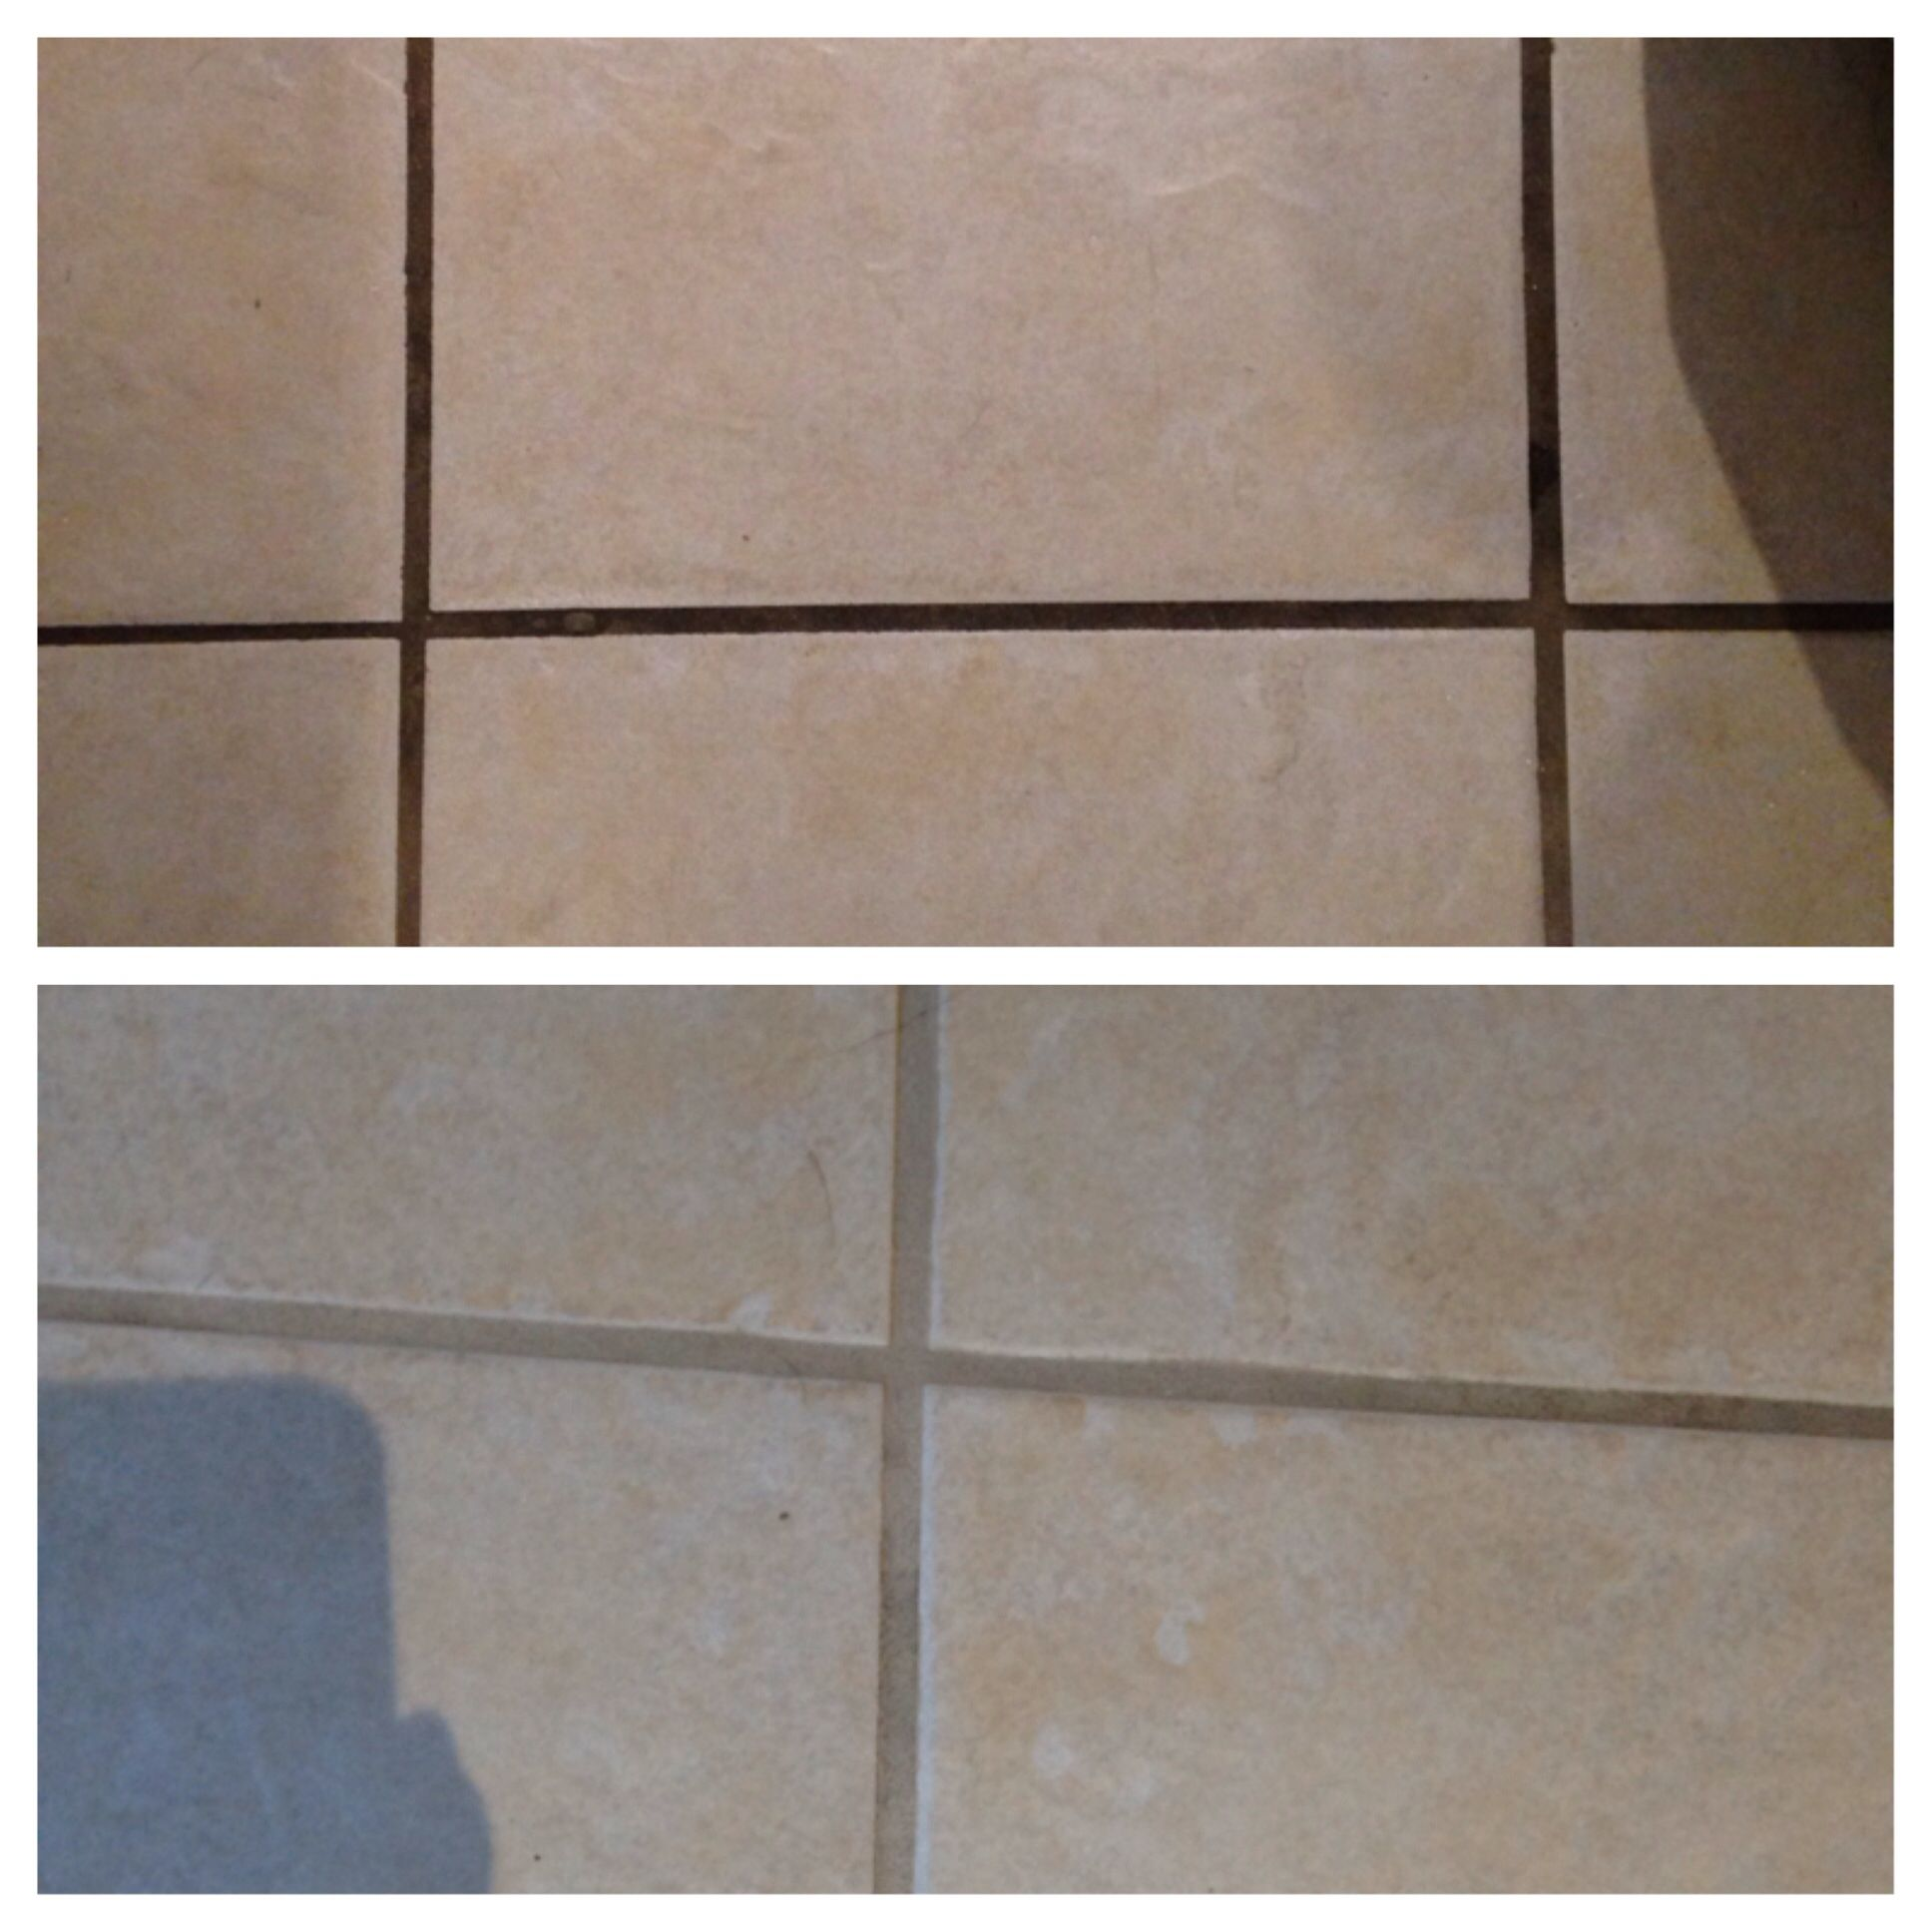 Cleaning ceramic tile grout Cleaning ceramic tiles, Tile